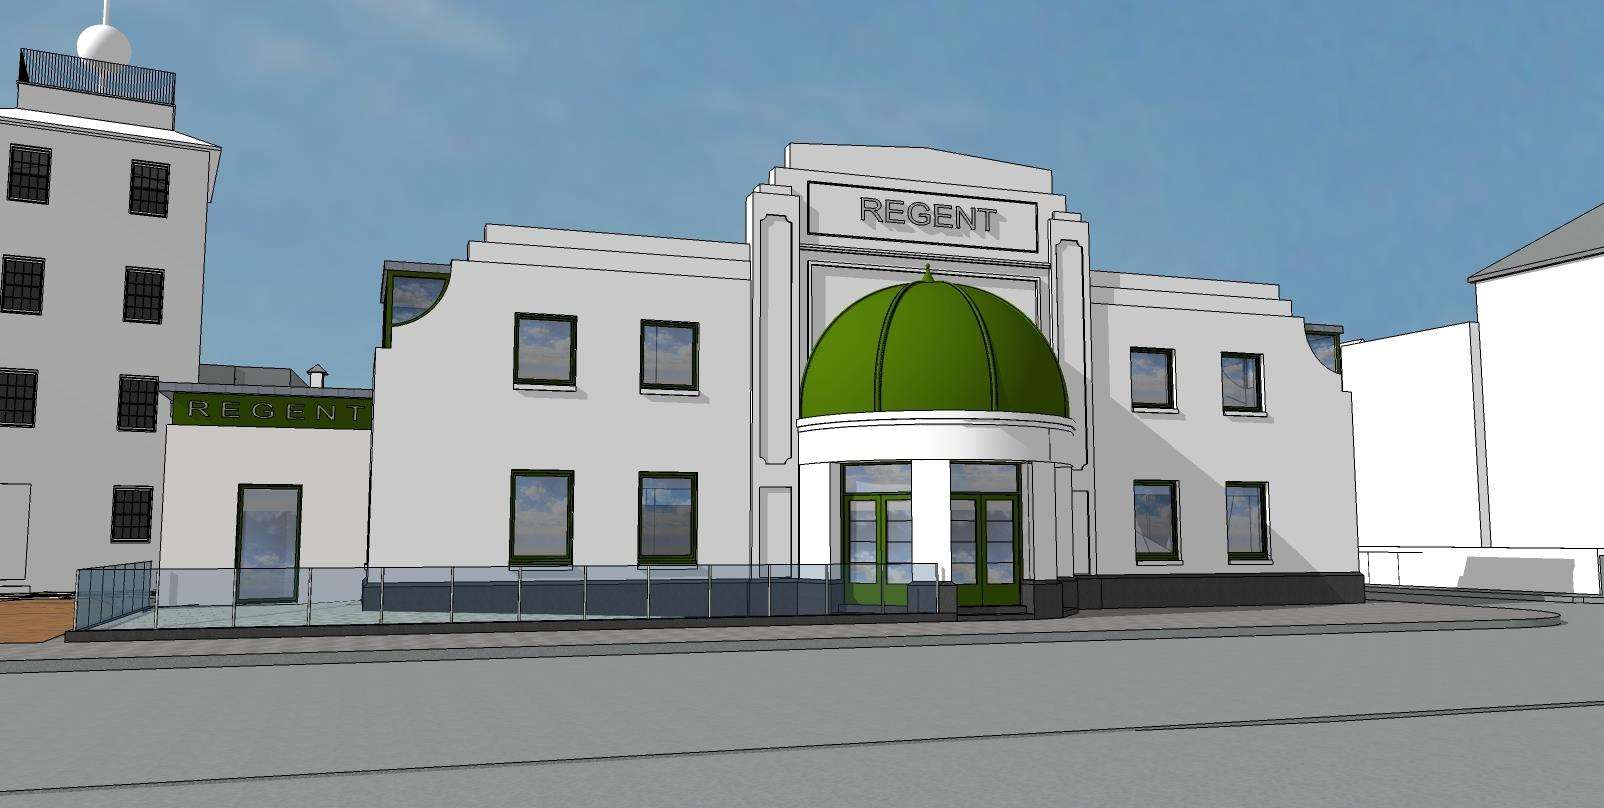 The latest plans for The Regent in Deal were submitted to DDC in late December 2018